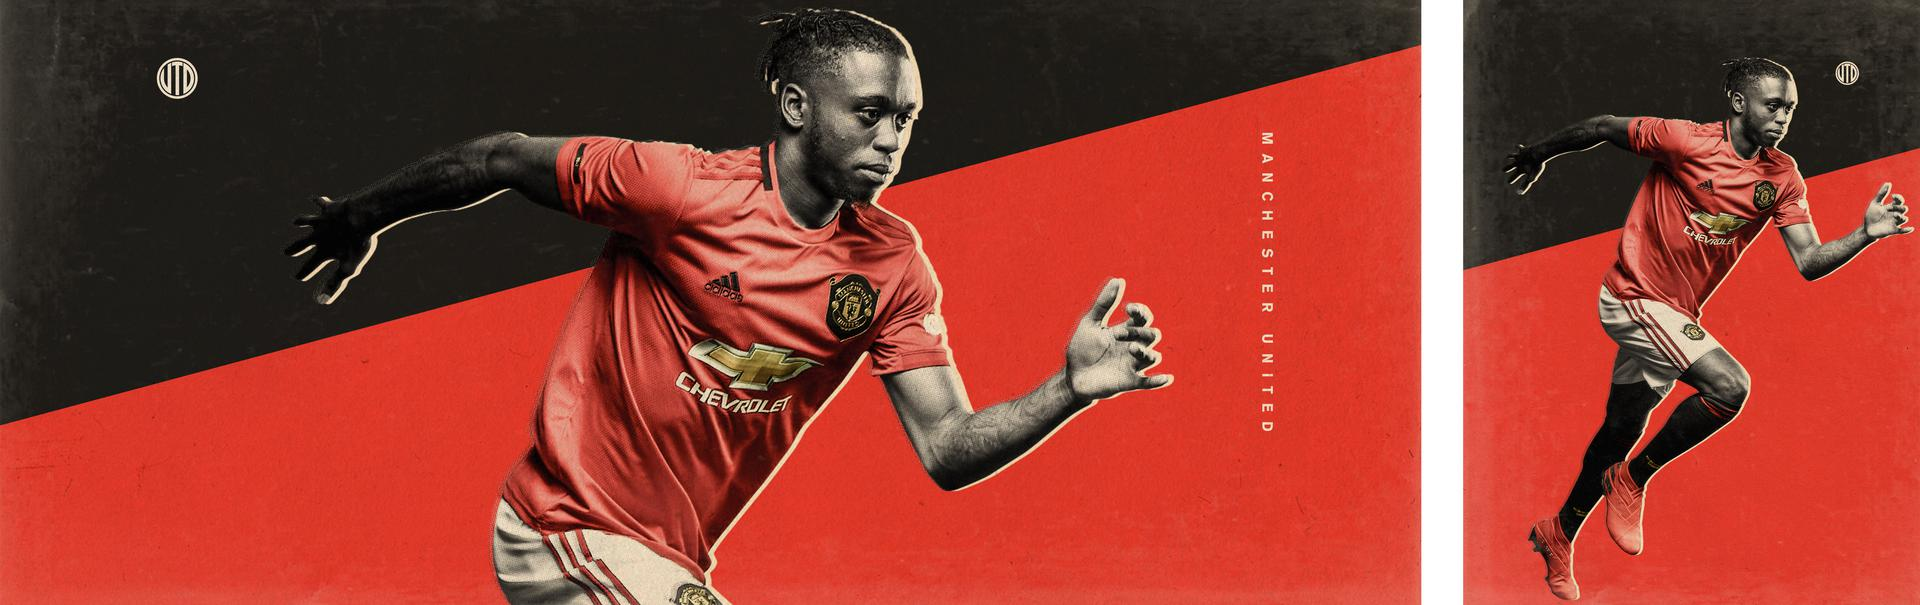 Promotional graphic to announce Aaron Wan-Bissaka as a new signing for Manchester United,